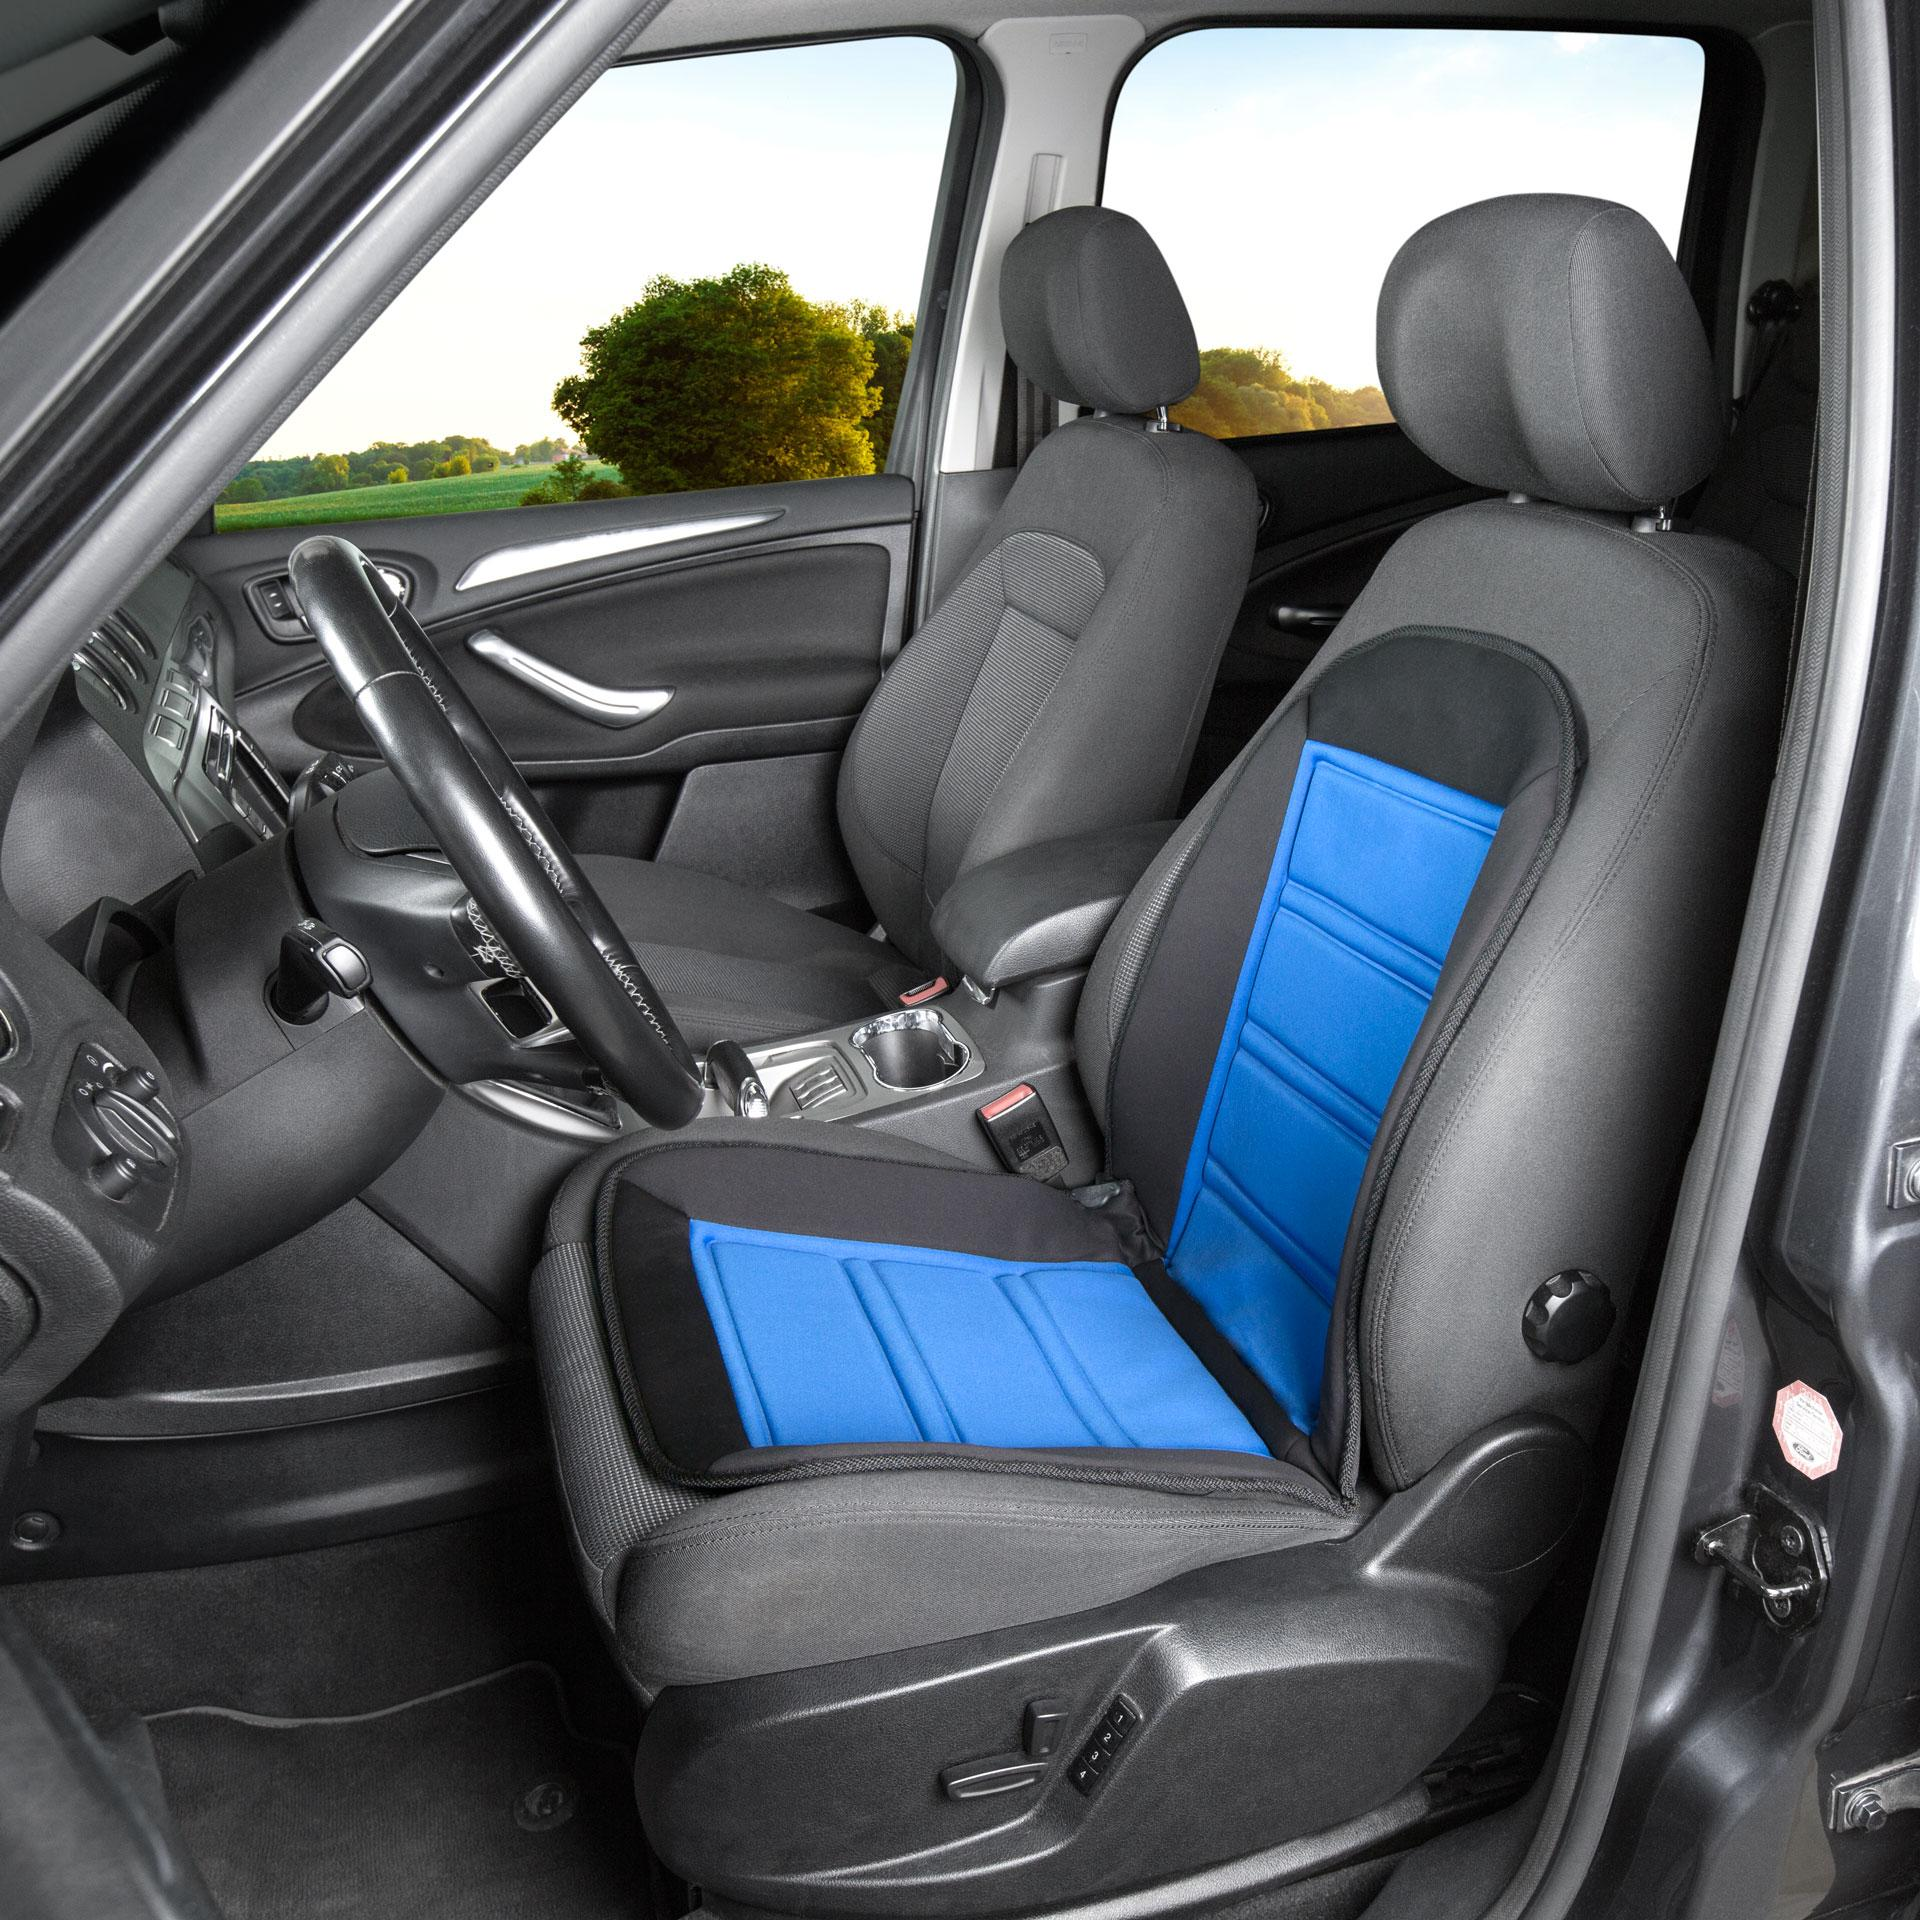 Heated Seat Cover WALSER 16591 rating